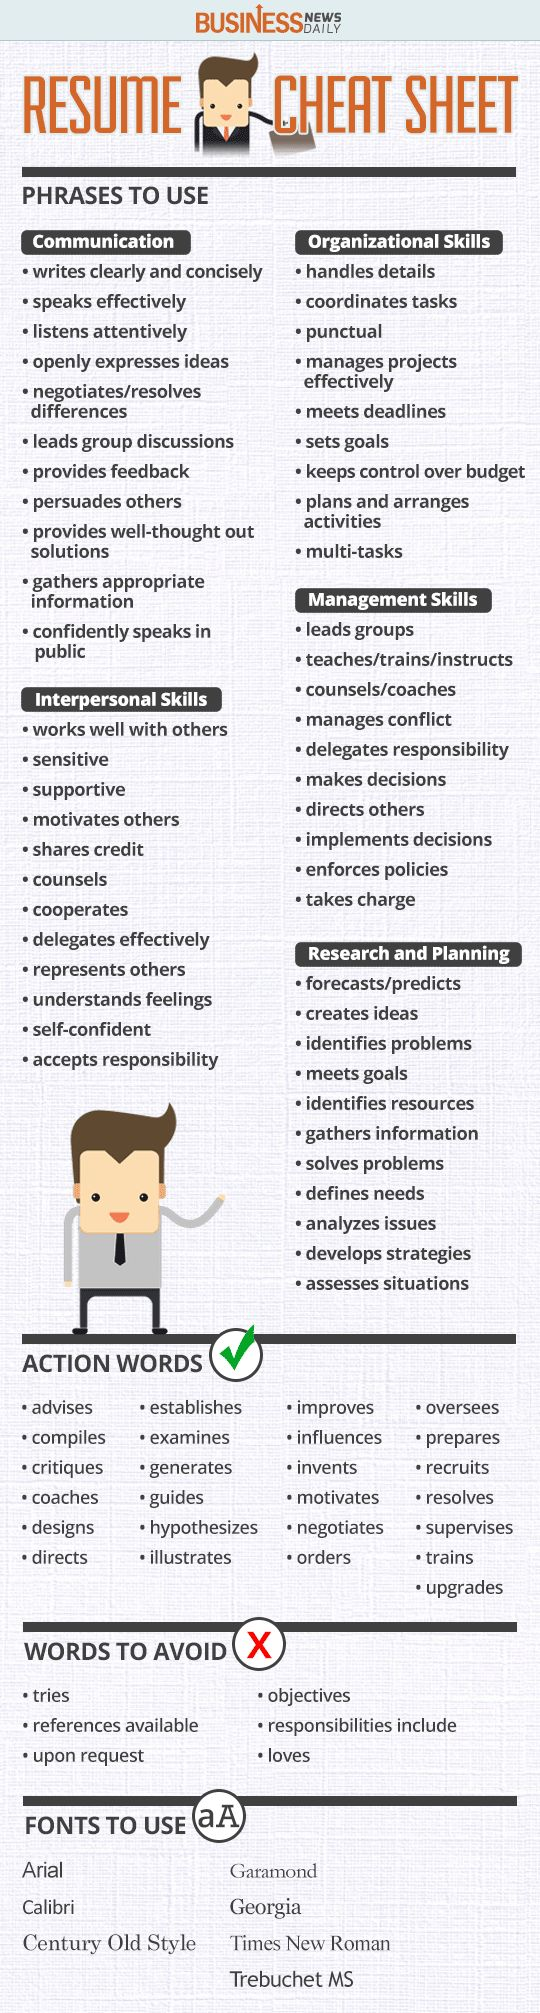 Opposenewapstandardsus  Stunning  Ideas About Resume On Pinterest  Cv Format Resume Cv And  With Excellent Resume Cheat Sheet Infographic Andrews Almost Done With A Complete Unit On Employment Which With Agreeable Computer Repair Technician Resume Also Resume Hair Stylist In Addition How To Write A Resume When You Have No Experience And Simple Resumes Samples As Well As Best Objective Statement For Resume Additionally Human Resource Resume Objective From Pinterestcom With Opposenewapstandardsus  Excellent  Ideas About Resume On Pinterest  Cv Format Resume Cv And  With Agreeable Resume Cheat Sheet Infographic Andrews Almost Done With A Complete Unit On Employment Which And Stunning Computer Repair Technician Resume Also Resume Hair Stylist In Addition How To Write A Resume When You Have No Experience From Pinterestcom